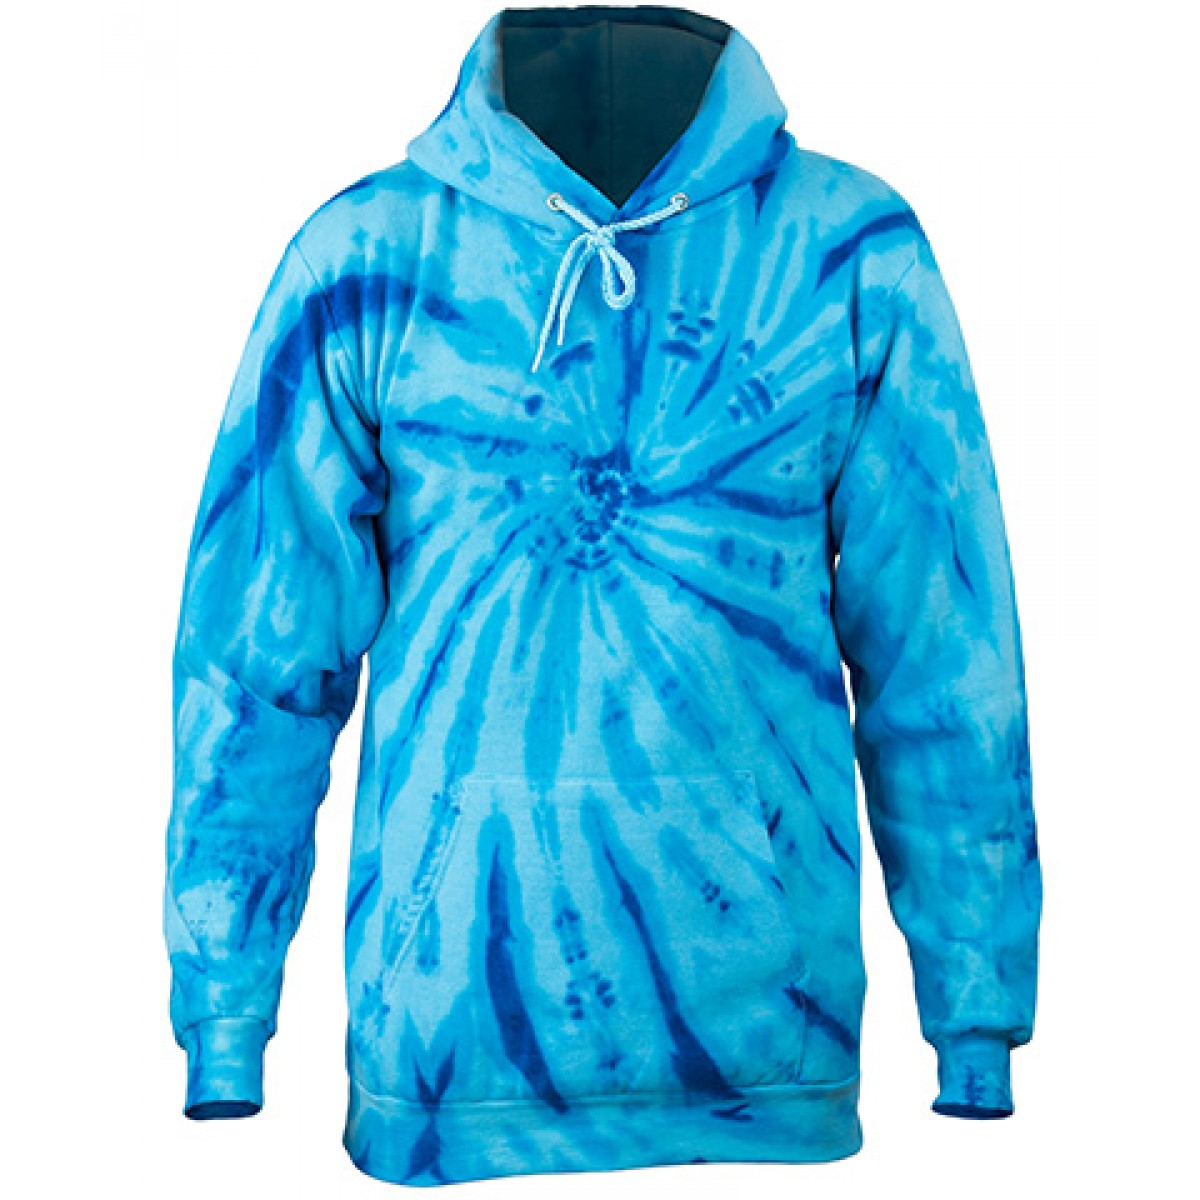 Tie-Dye Pullover Hooded Sweatshirt-Tropic Blue-S